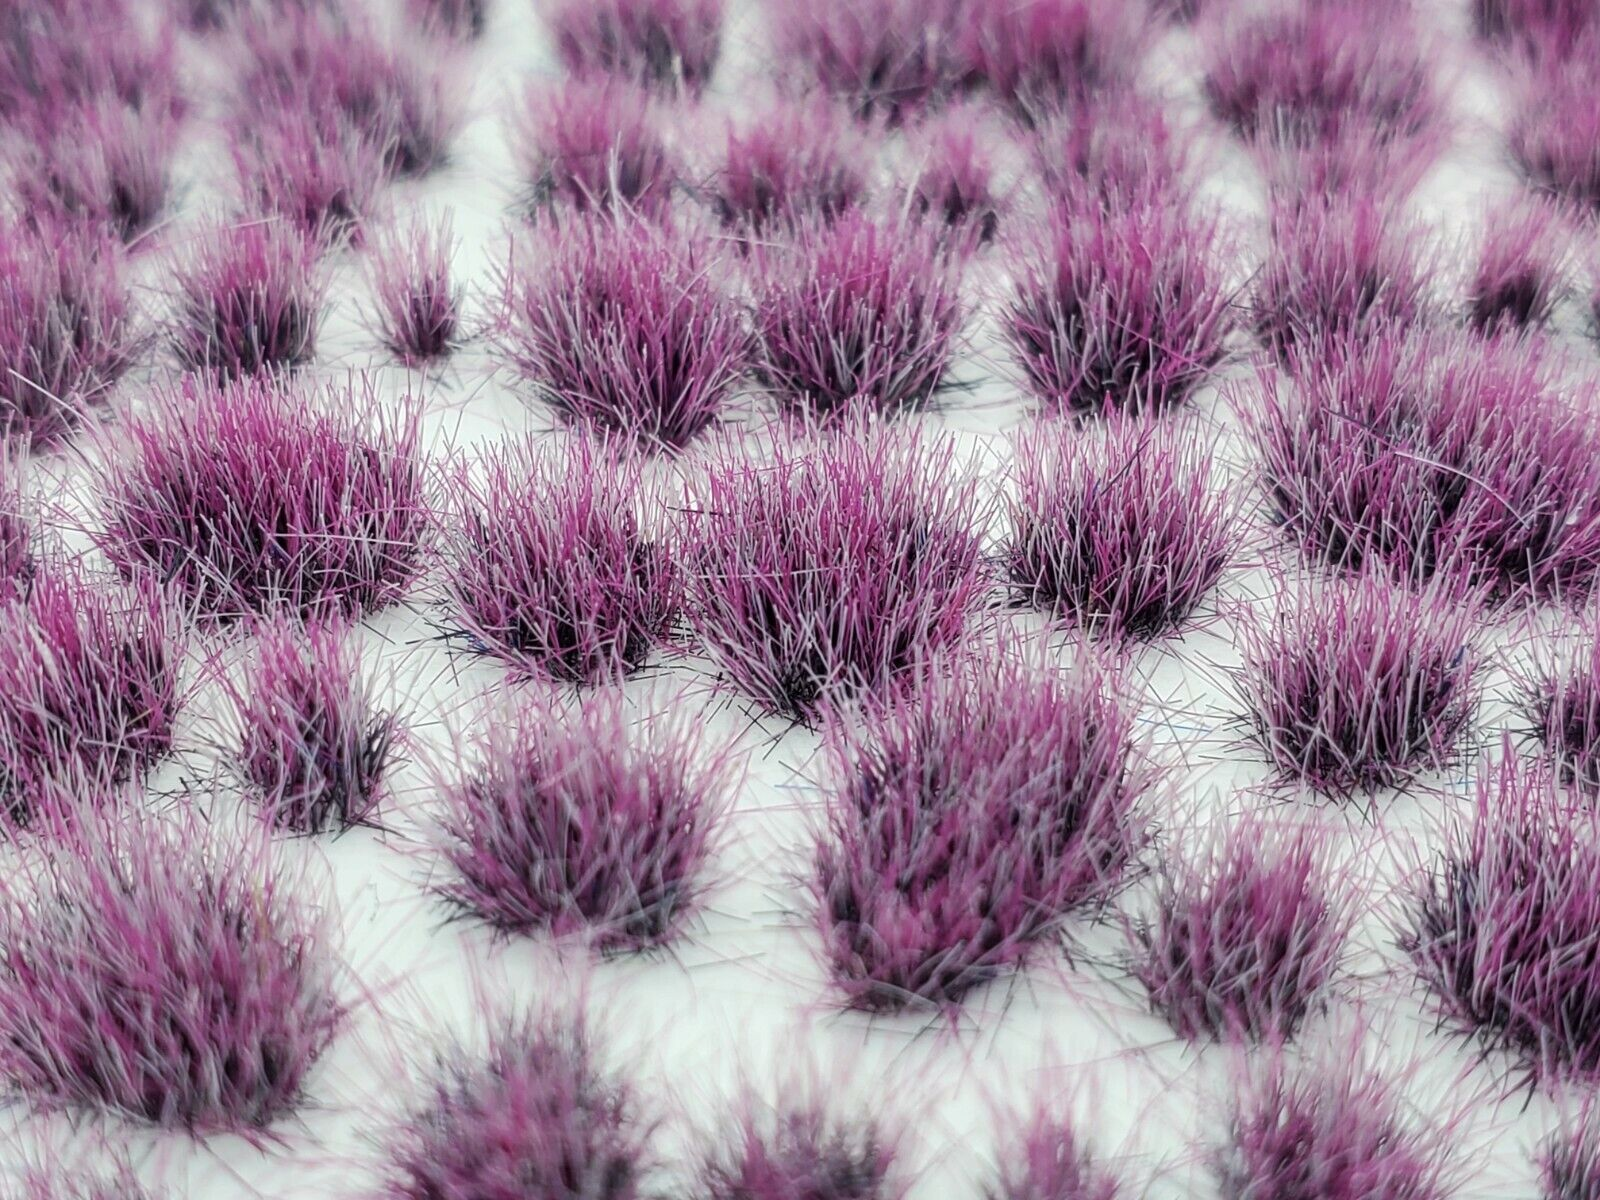 Self Adhesive Static Grass Tufts for Wargaming Terrain/Bases -Plum Purple- 4mm